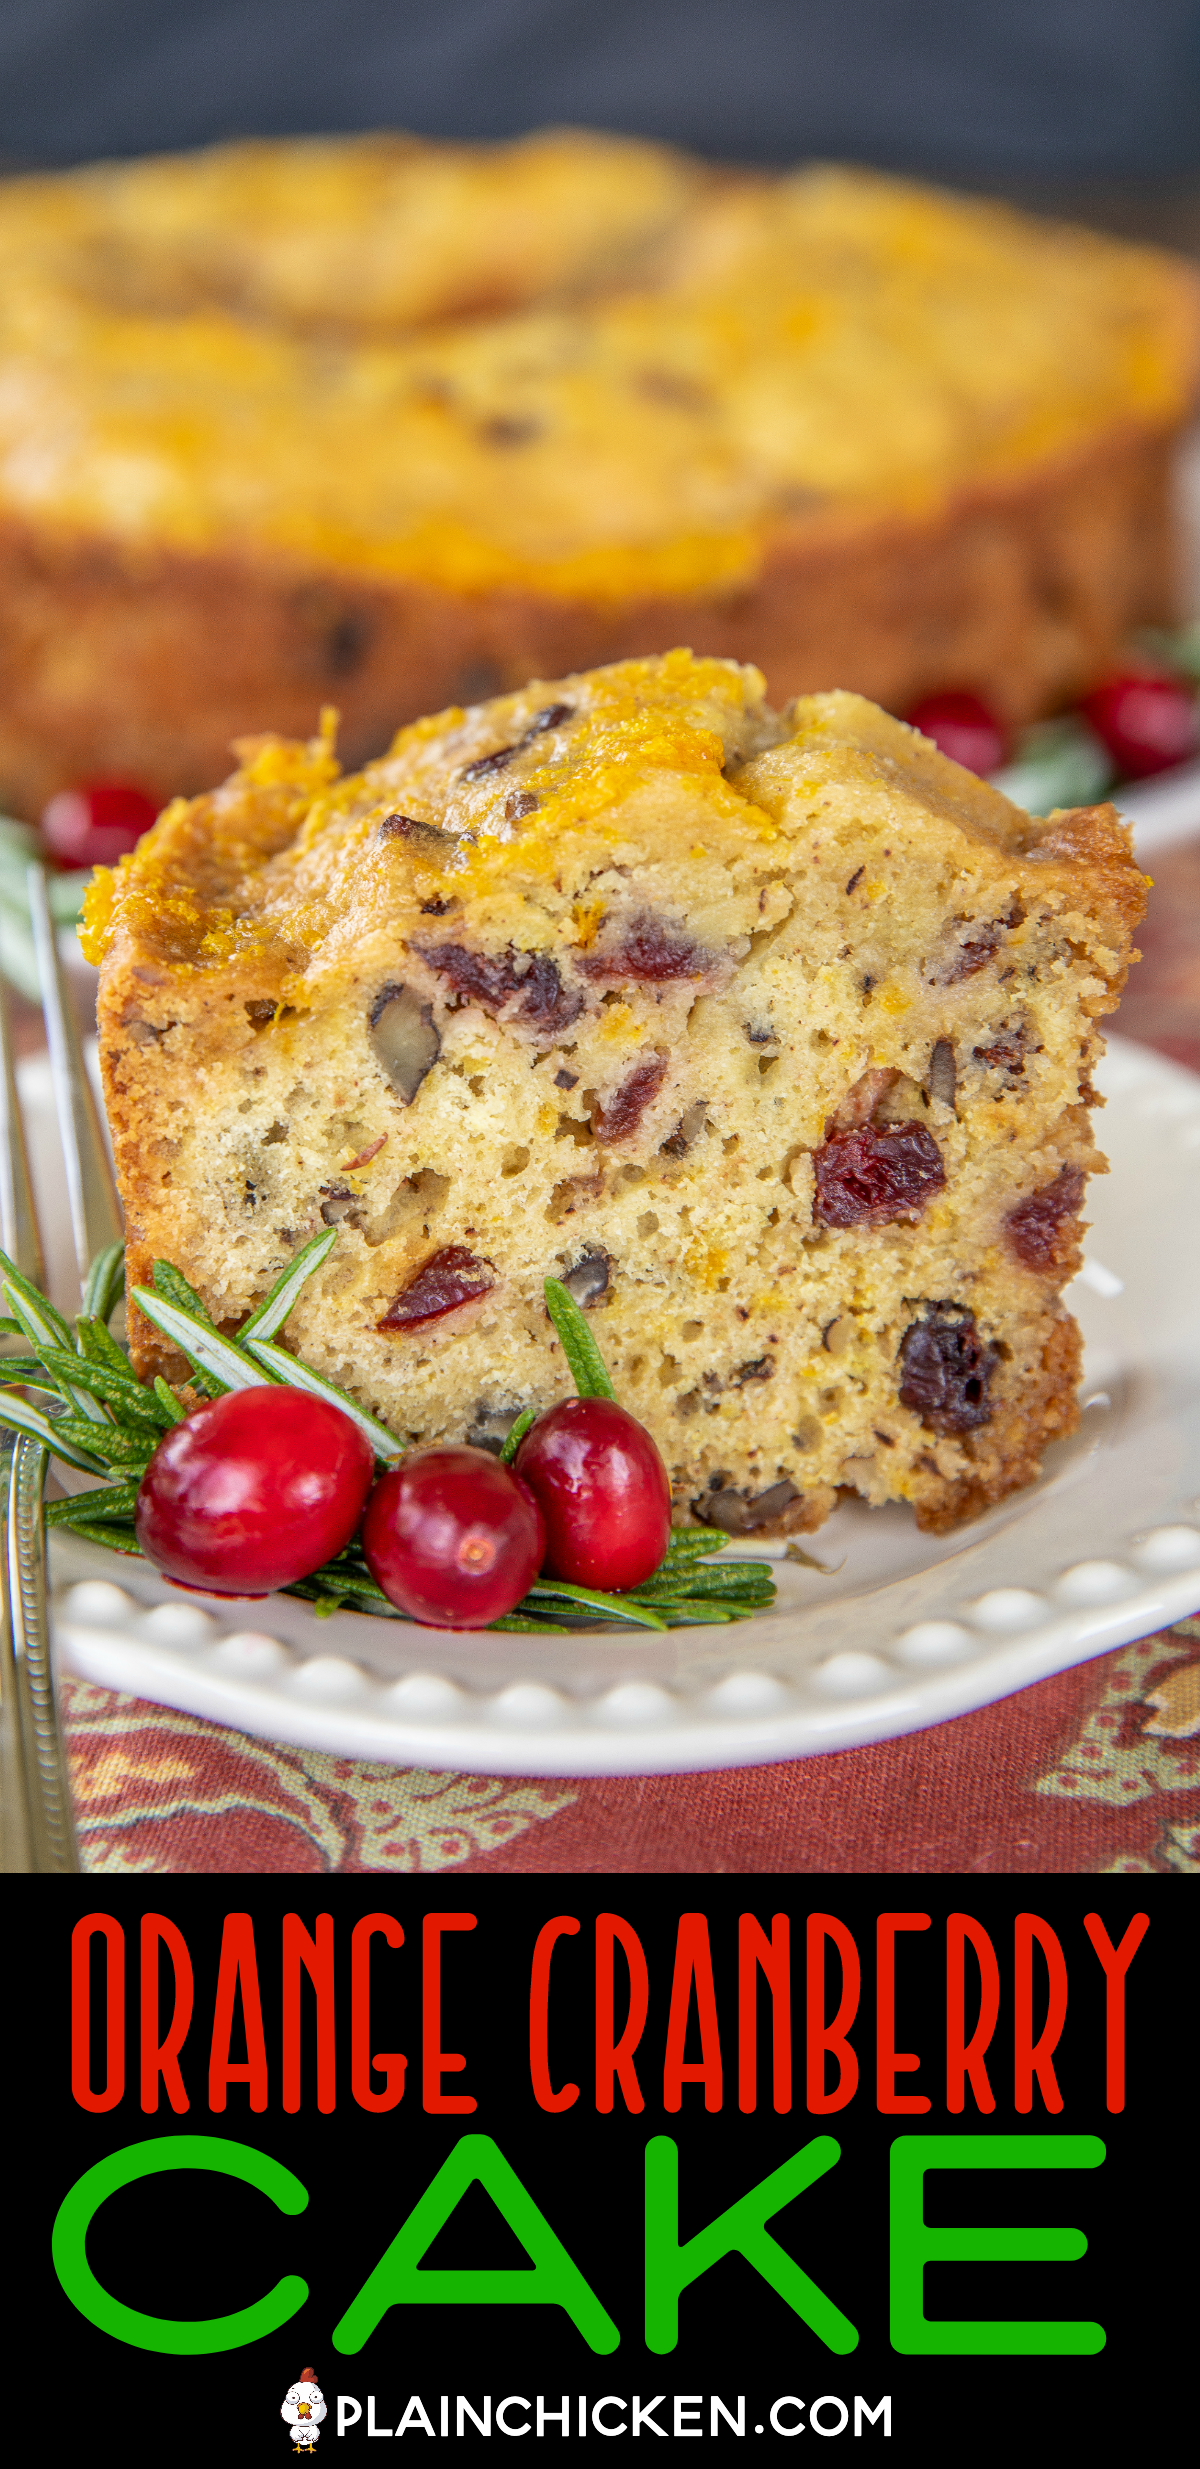 Orange Cranberry Cake Cranberry Orange Cake Cranberry Cake Dried Cranberries Recipes